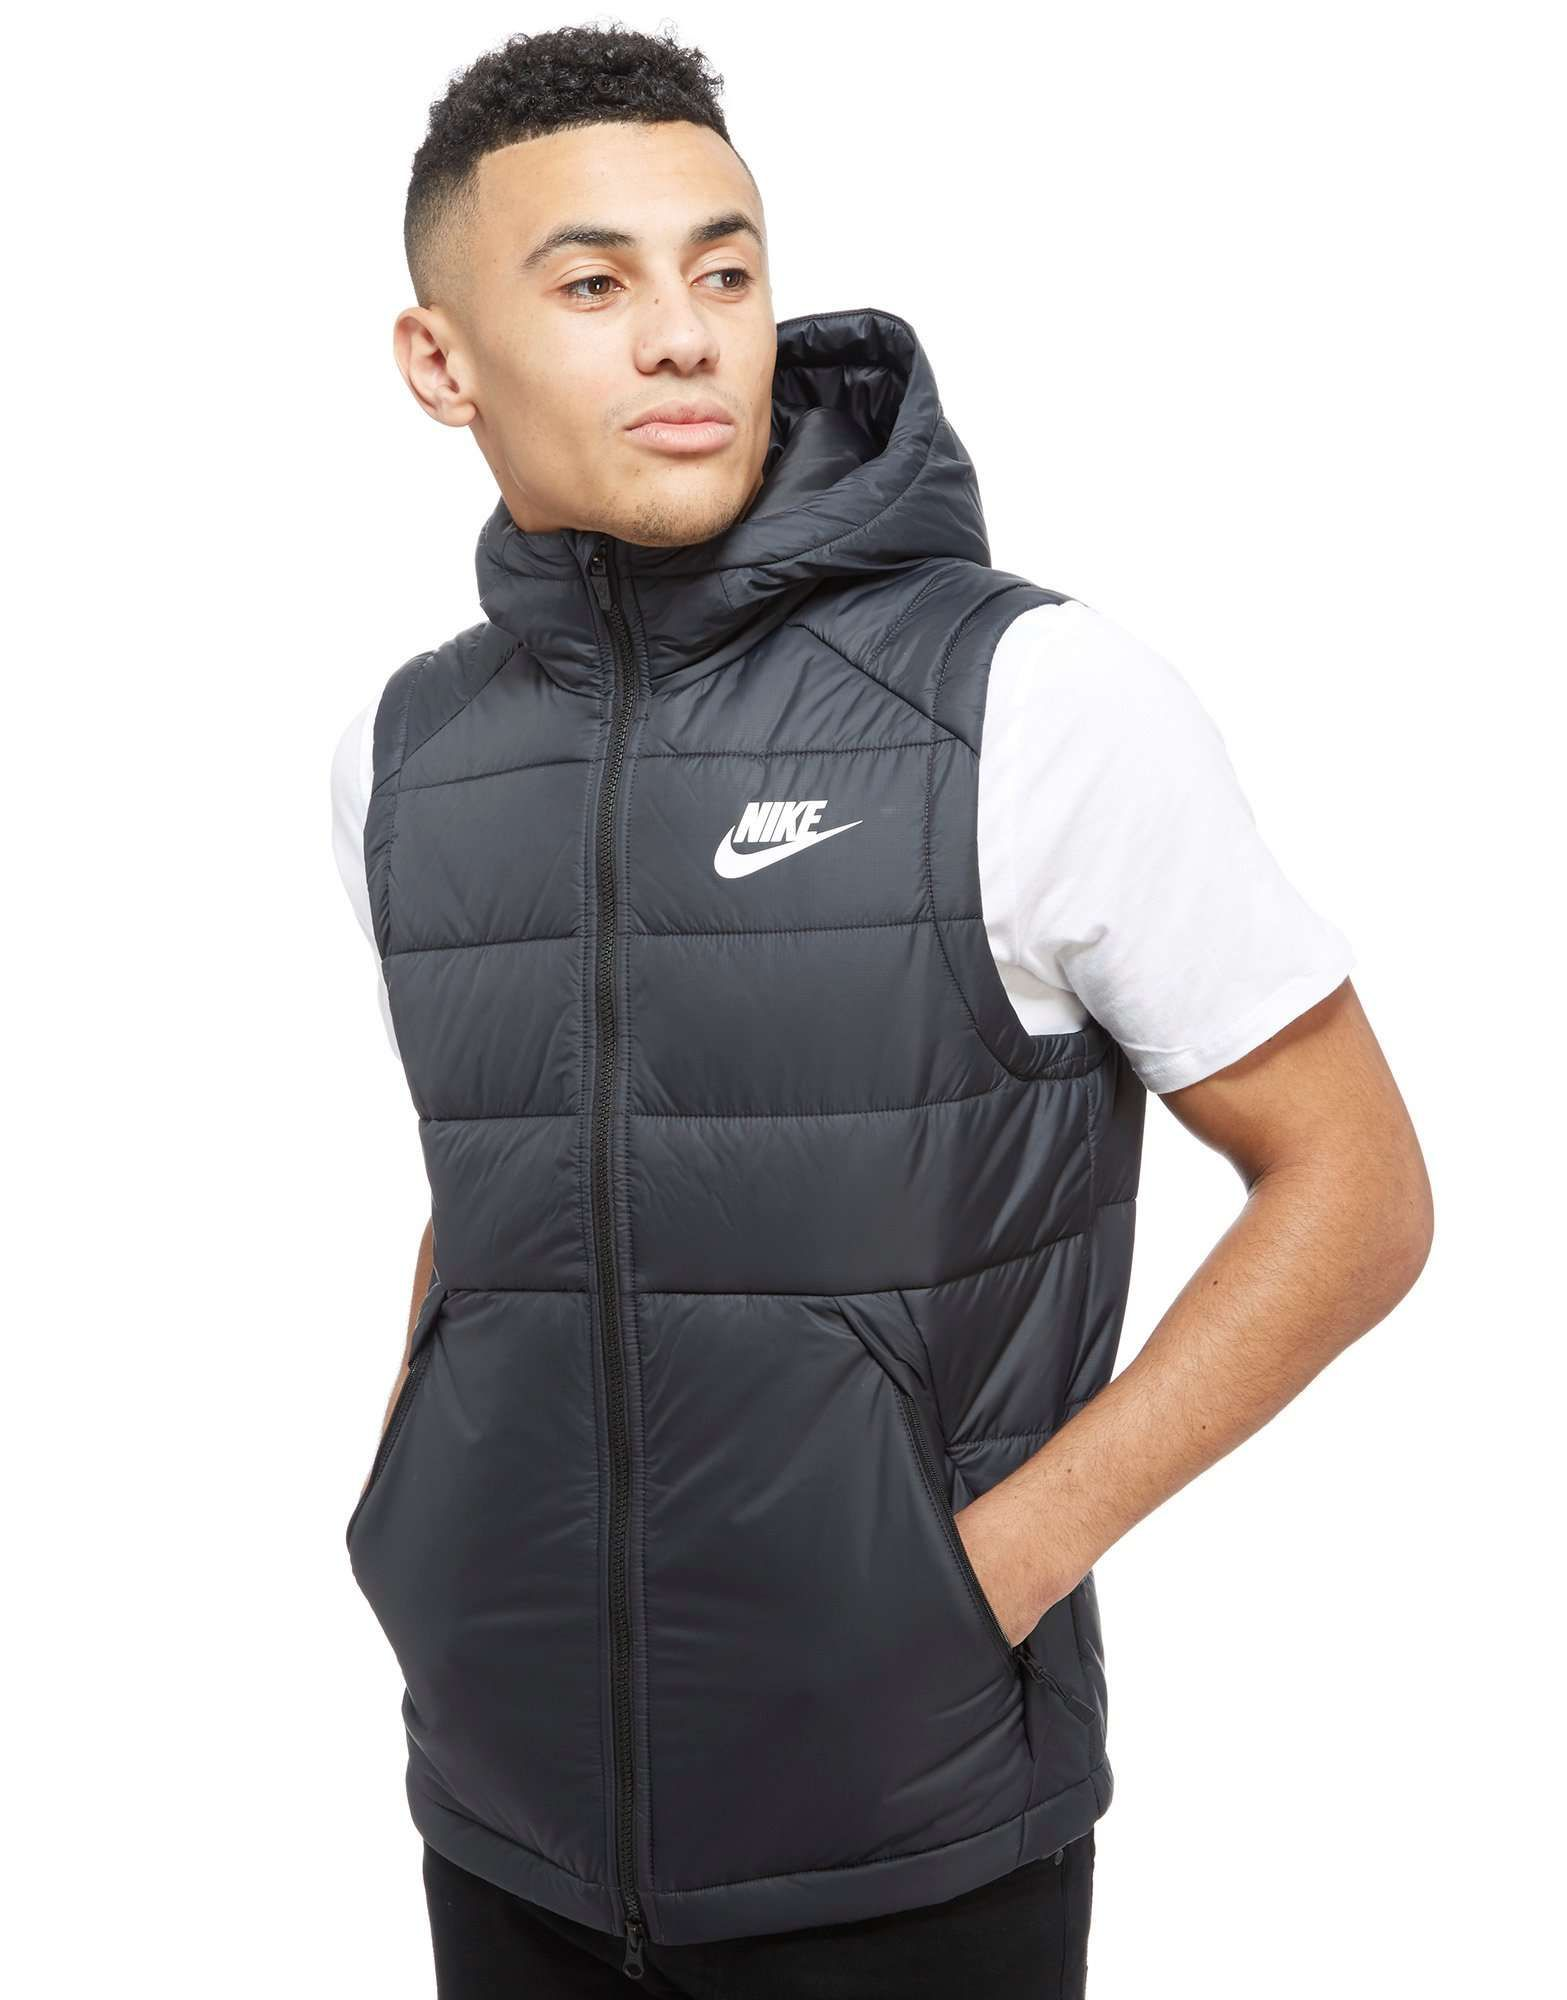 Hooded Sports With Online Nike For Shop Gilet Jd oBdxrCe